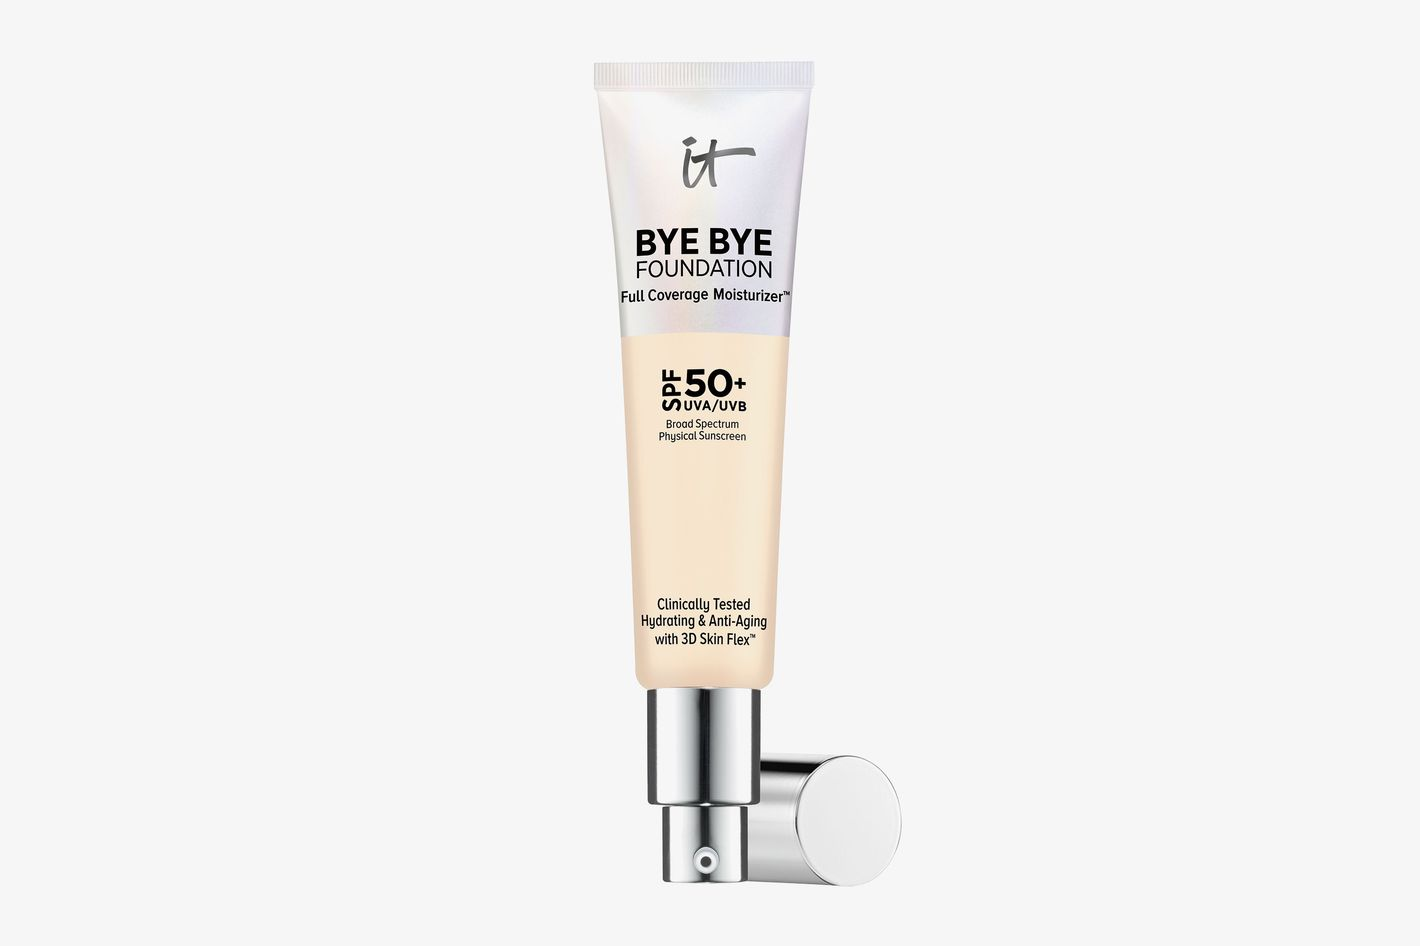 Bye Bye Foundation Full Coverage Moisturizer with SPF 50+ Fair